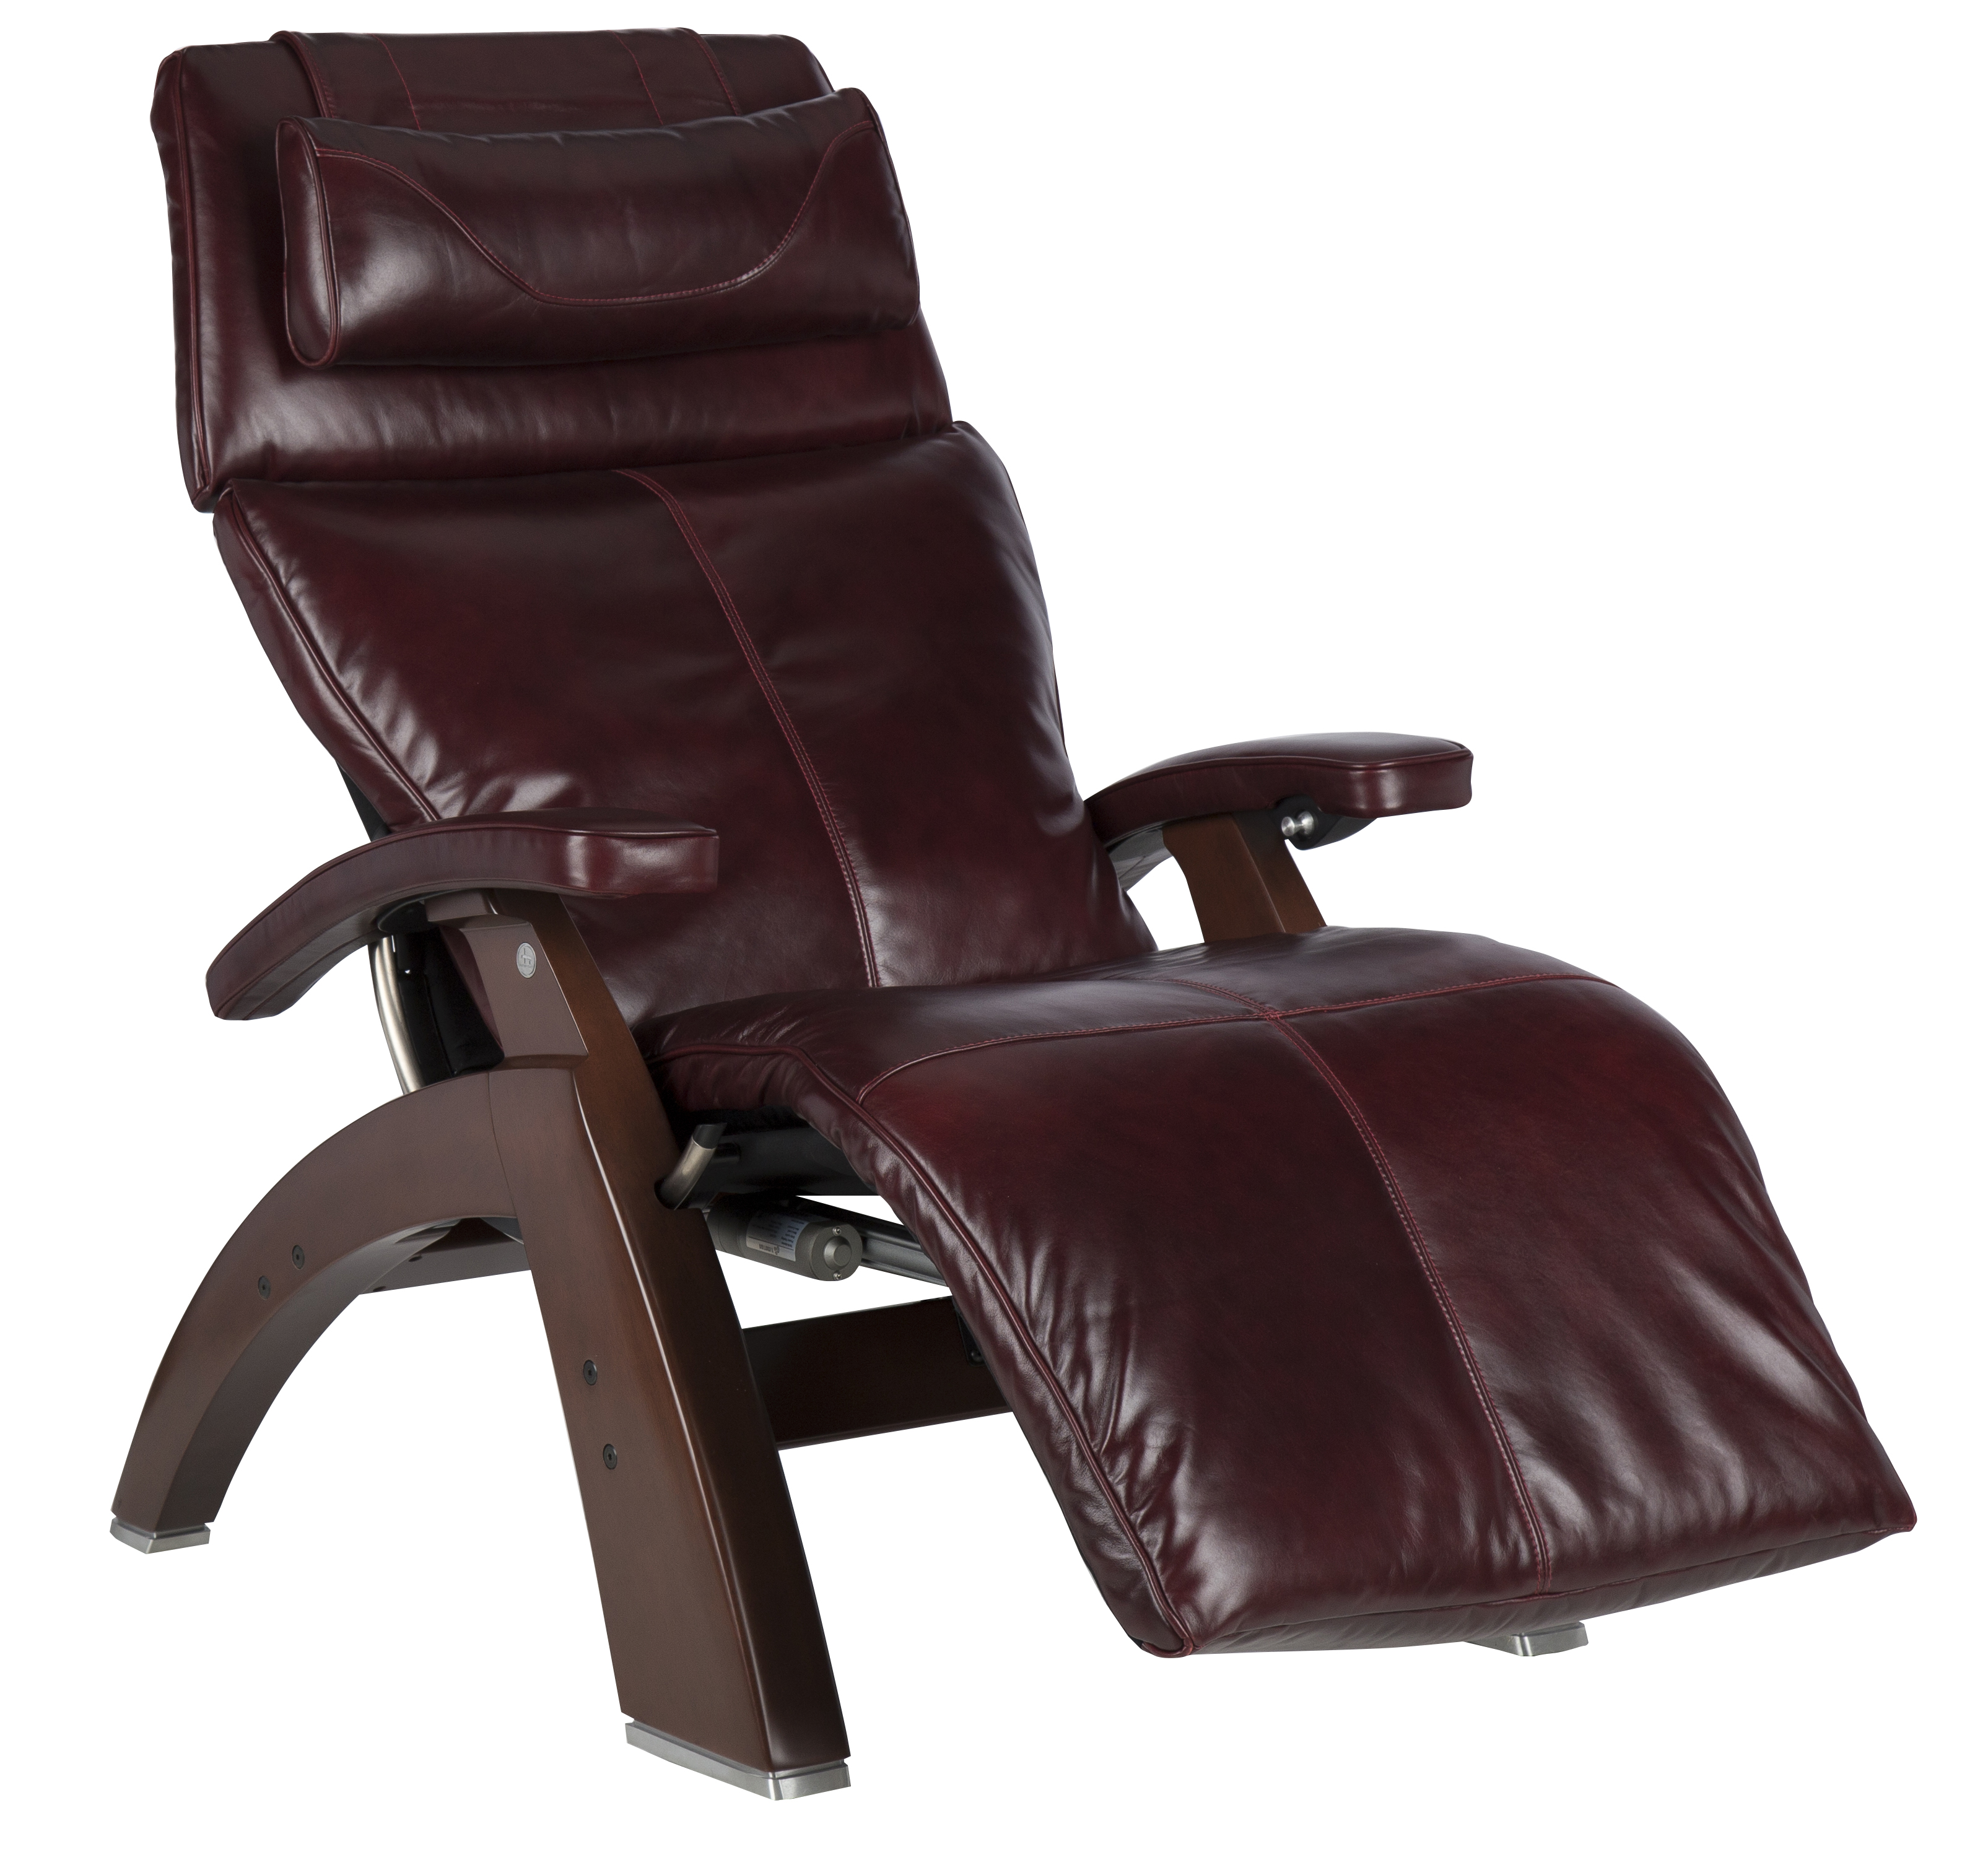 The Perfect Chair Human Touch Massage Chairs Receive Exclusive Endorsement